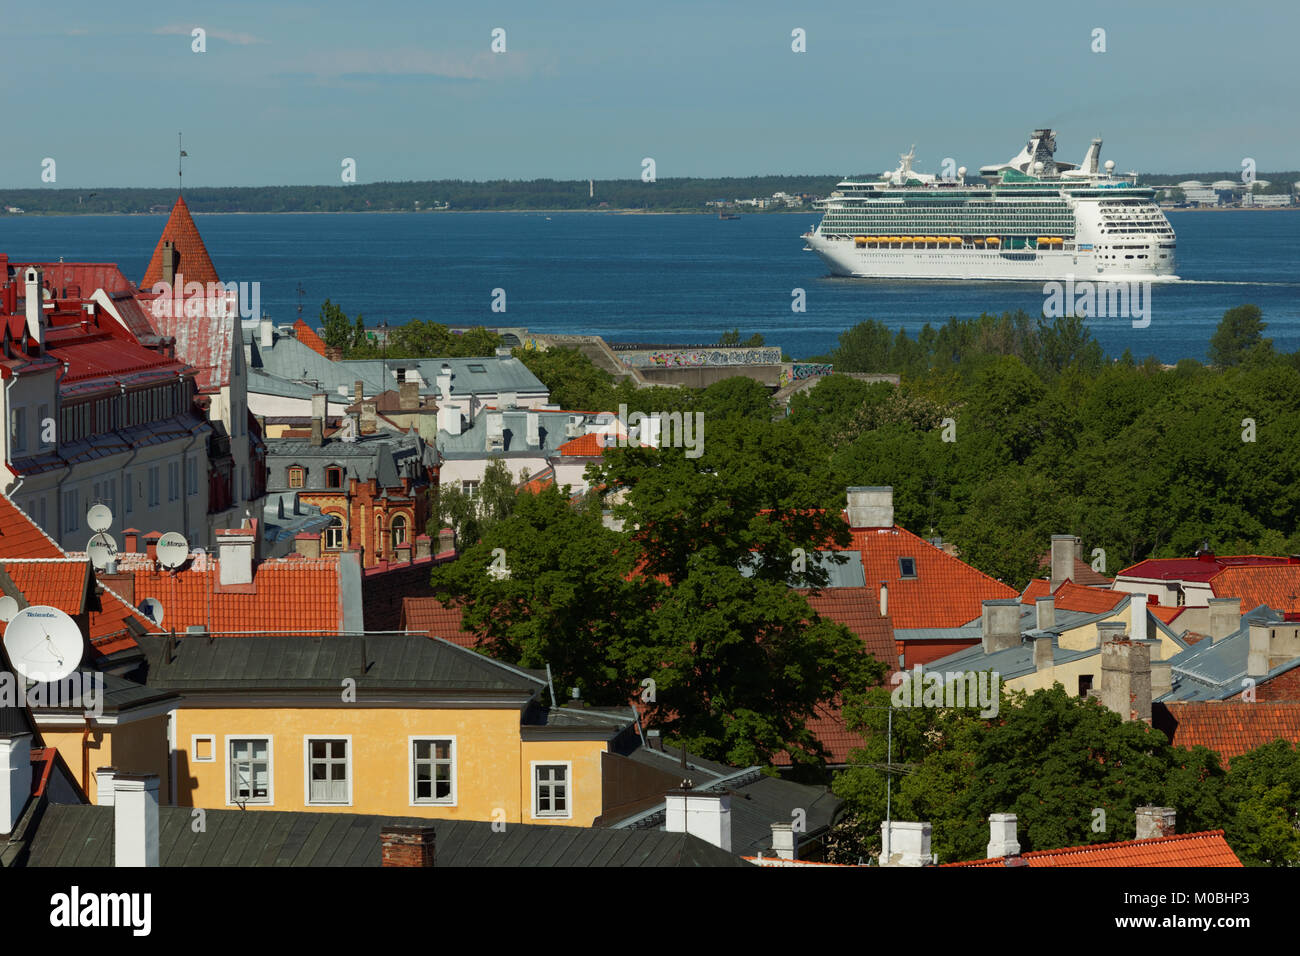 Tallinn, Estonia - June 10, 2017: Cruise liner Navigator Of The Seas departs from the port. The ship owned by Royal - Stock Image